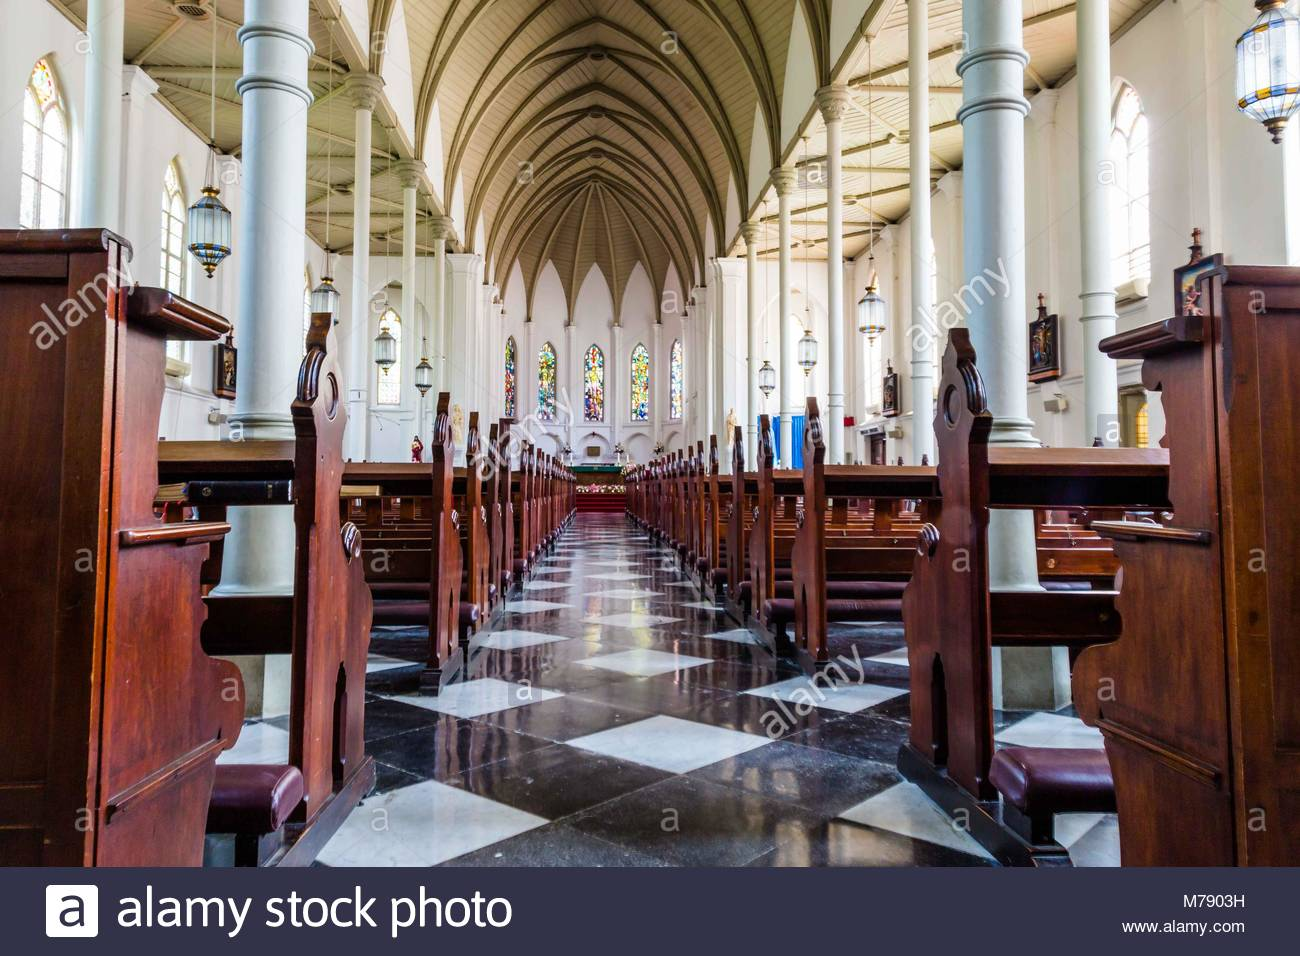 Bogor Indonesia Stock Photos Images Alamy Cathedral Image Zoology Museum